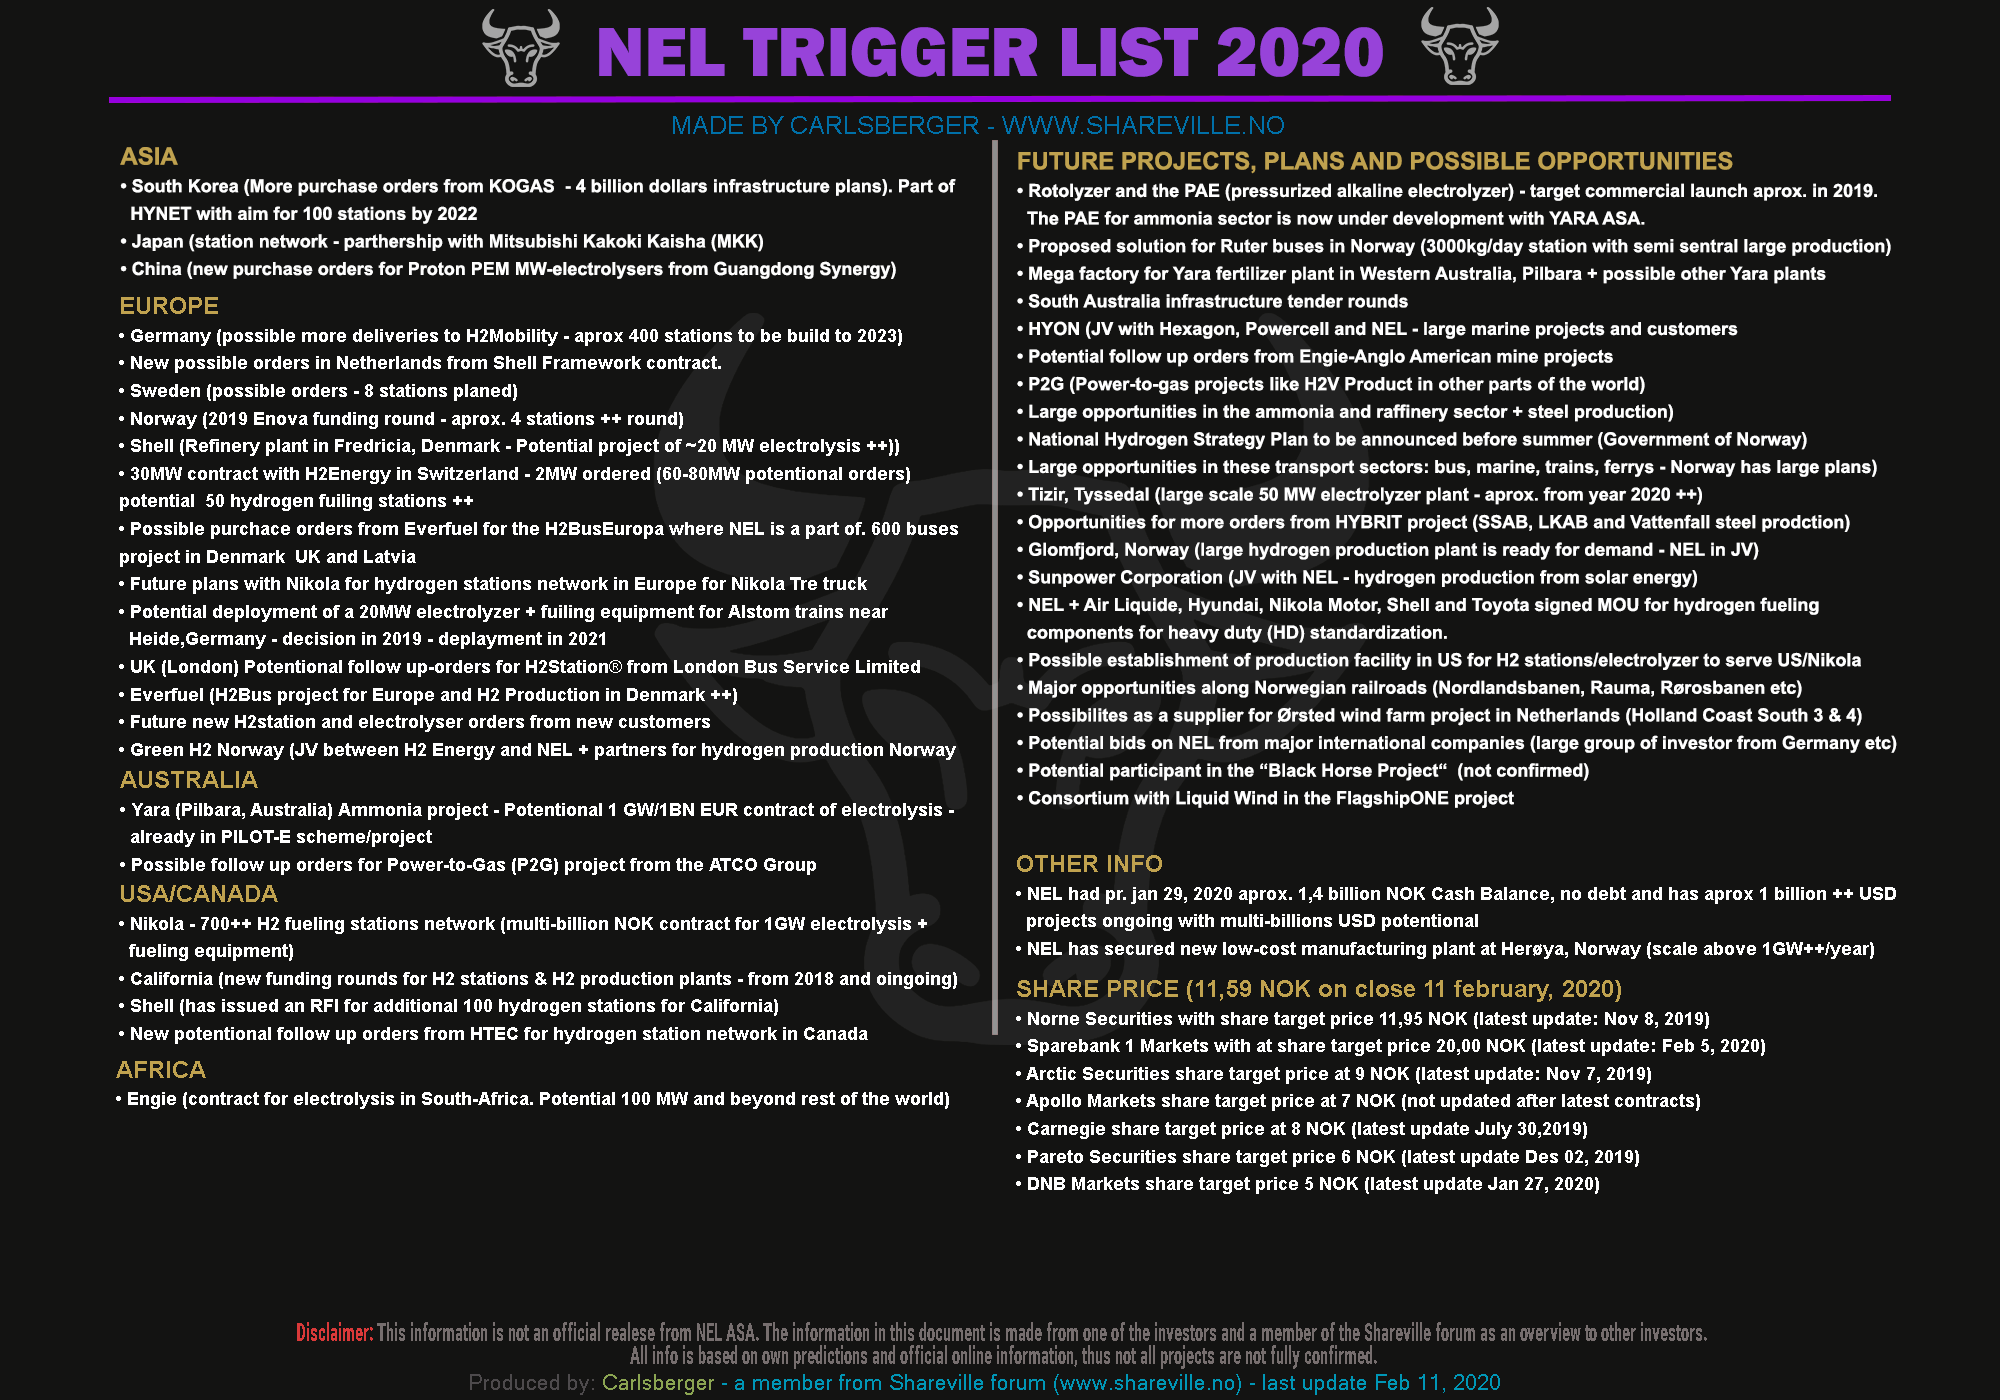 1581633108-triggers2020updatefeb12-2020.png